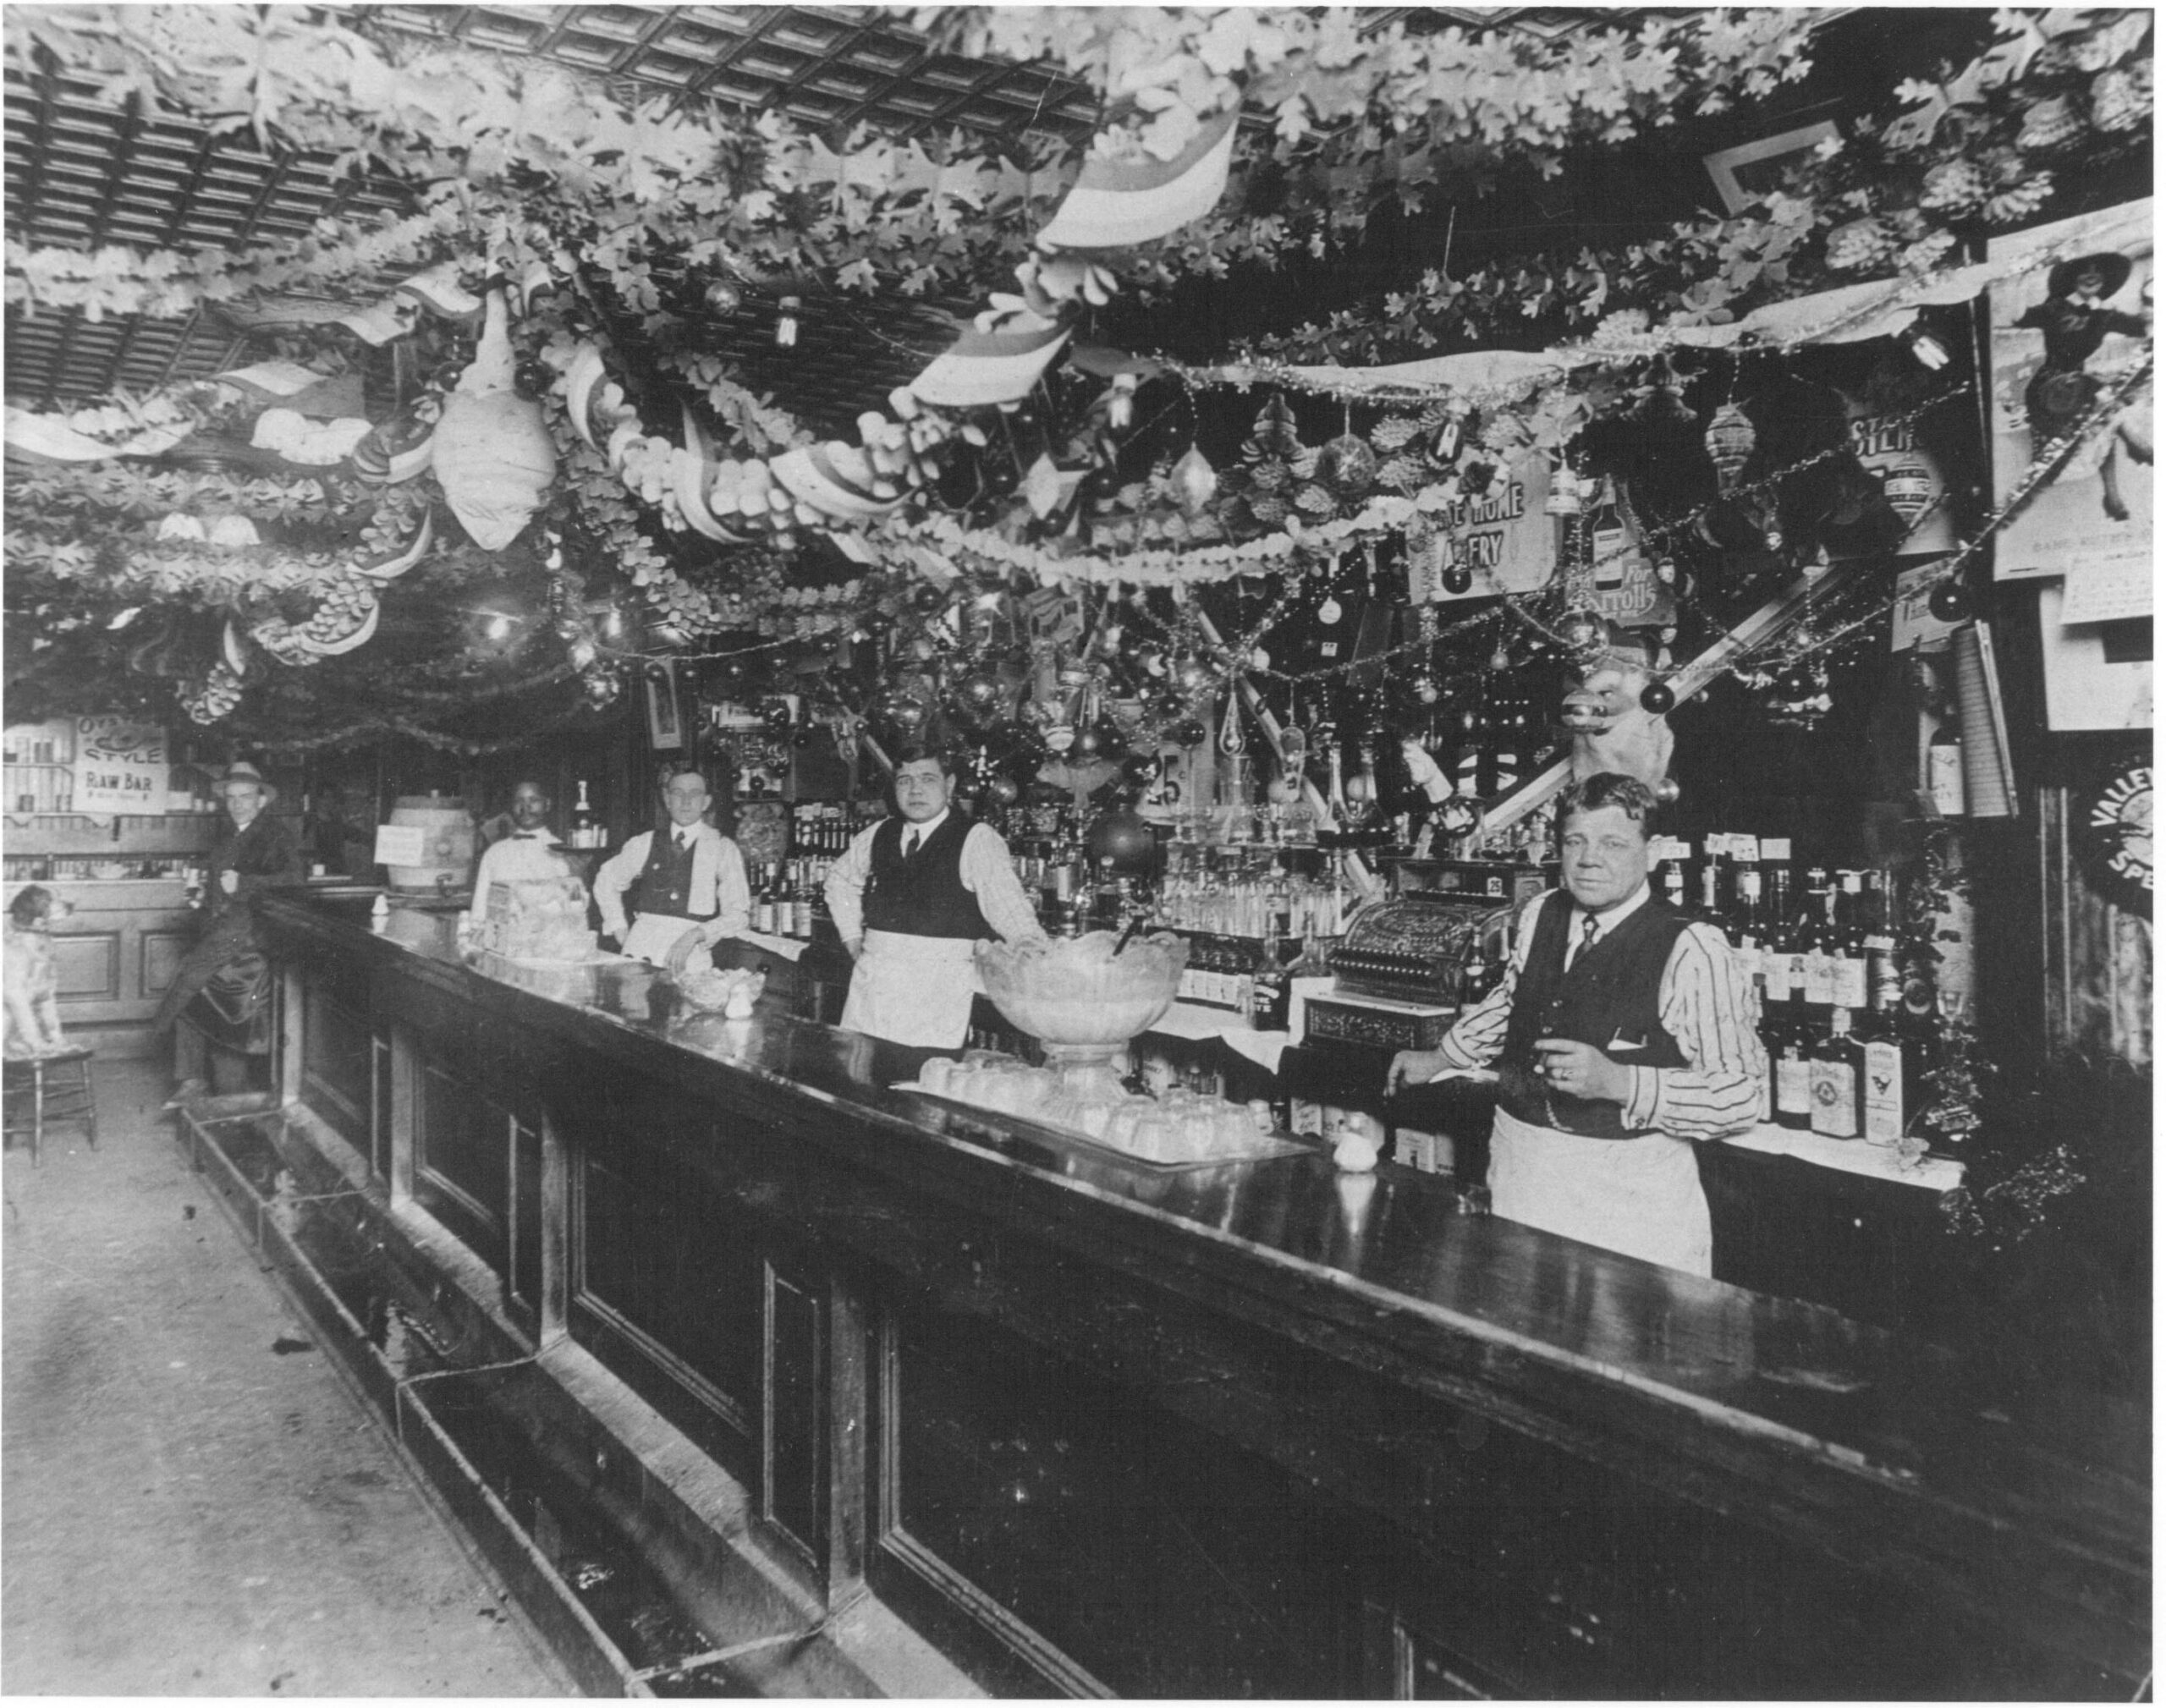 Babe Ruth and his father at the saloon